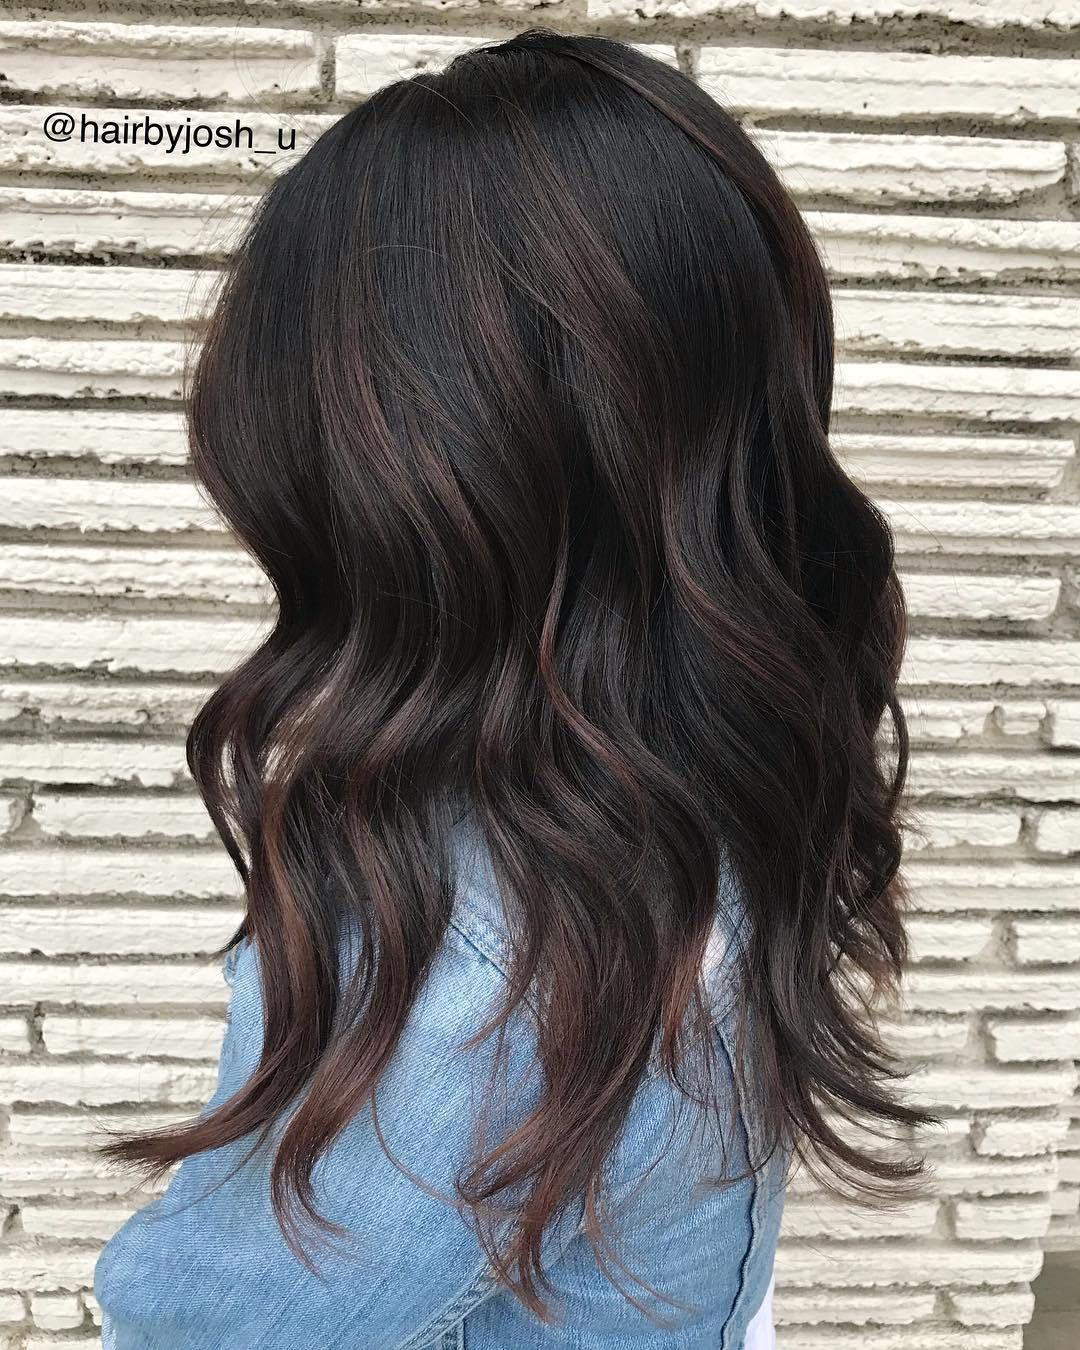 60 Chocolate Brown Hair Color Ideas For Brunettes Hair Styles Brunette Hair Color Brown Hair Colors